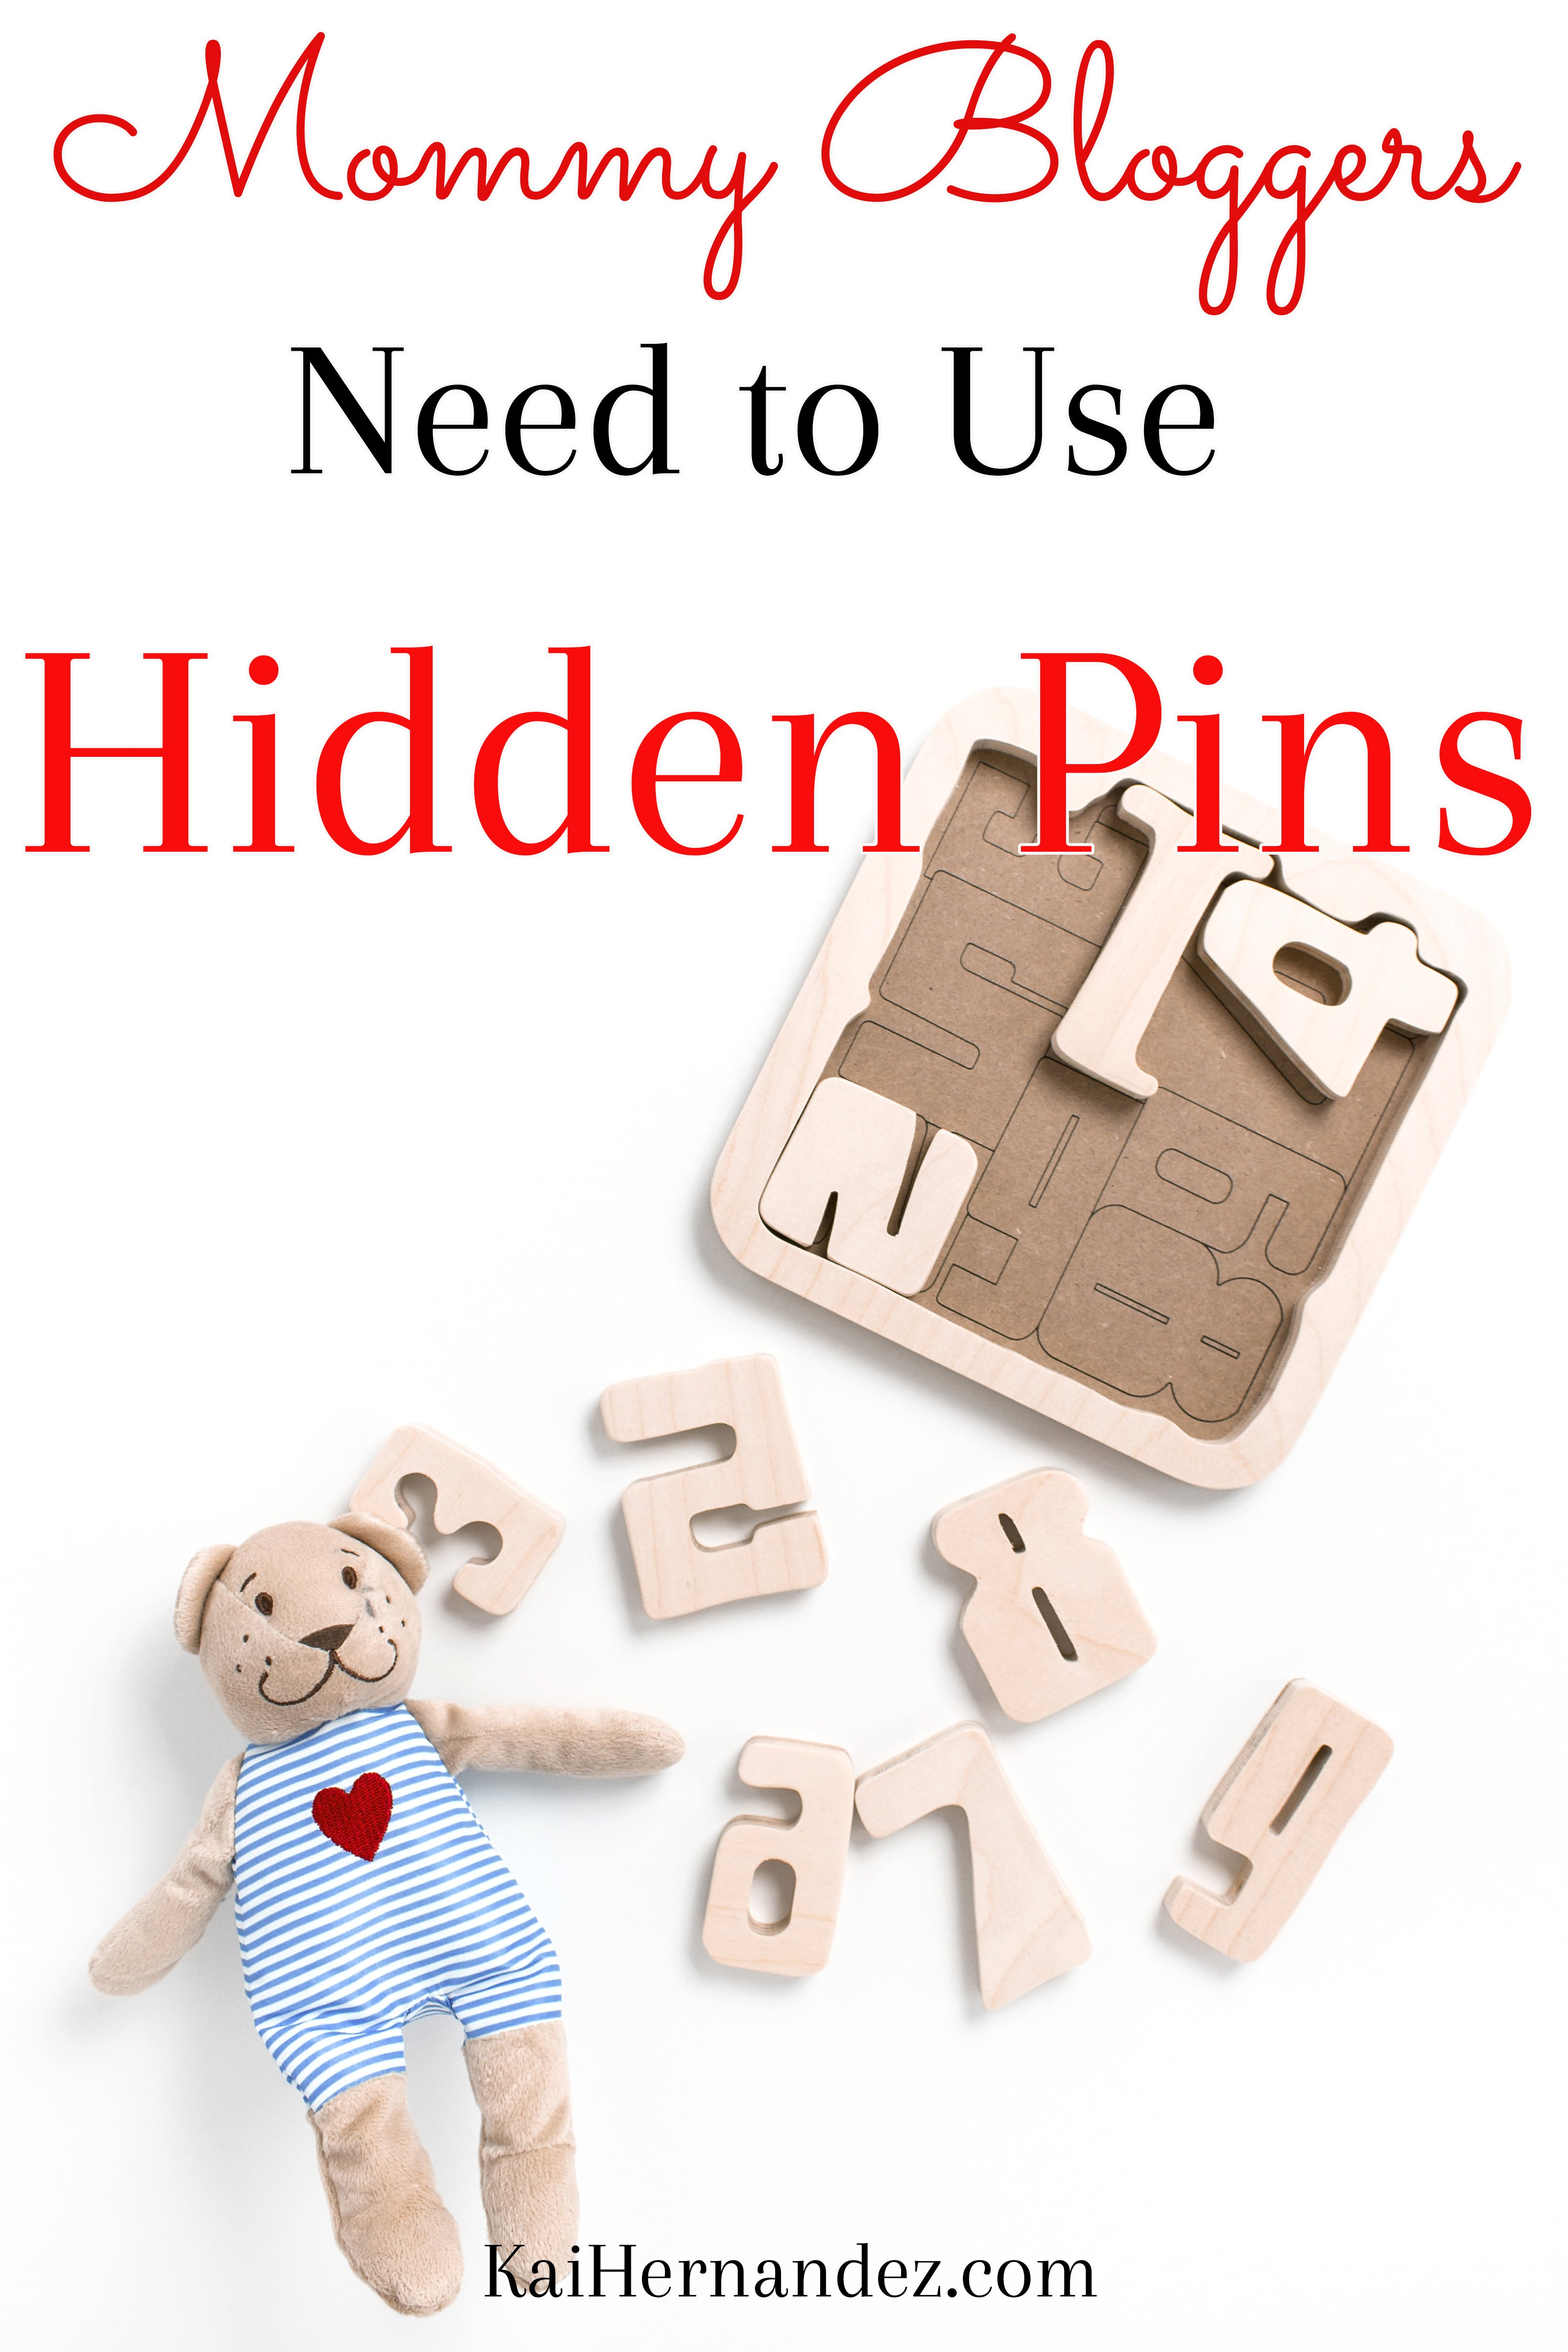 Why Even Mommy Bloggers Need to Use Hidden Pins | How to Hide Pins on Your Blog | Hide Pinnable Images | Hidden pins in blog | Hide pics on WordPress | Hide Pinterest Images | How to Hide Pins | How to Hit Pinnable Images | Hidden Pins | Secret Images on Your Blog | Adding Hidden Pics to your Post | Pinterest Marketing | Make Pins | Promote Your Blog | Social Media Marketing | Promote on Pinterest